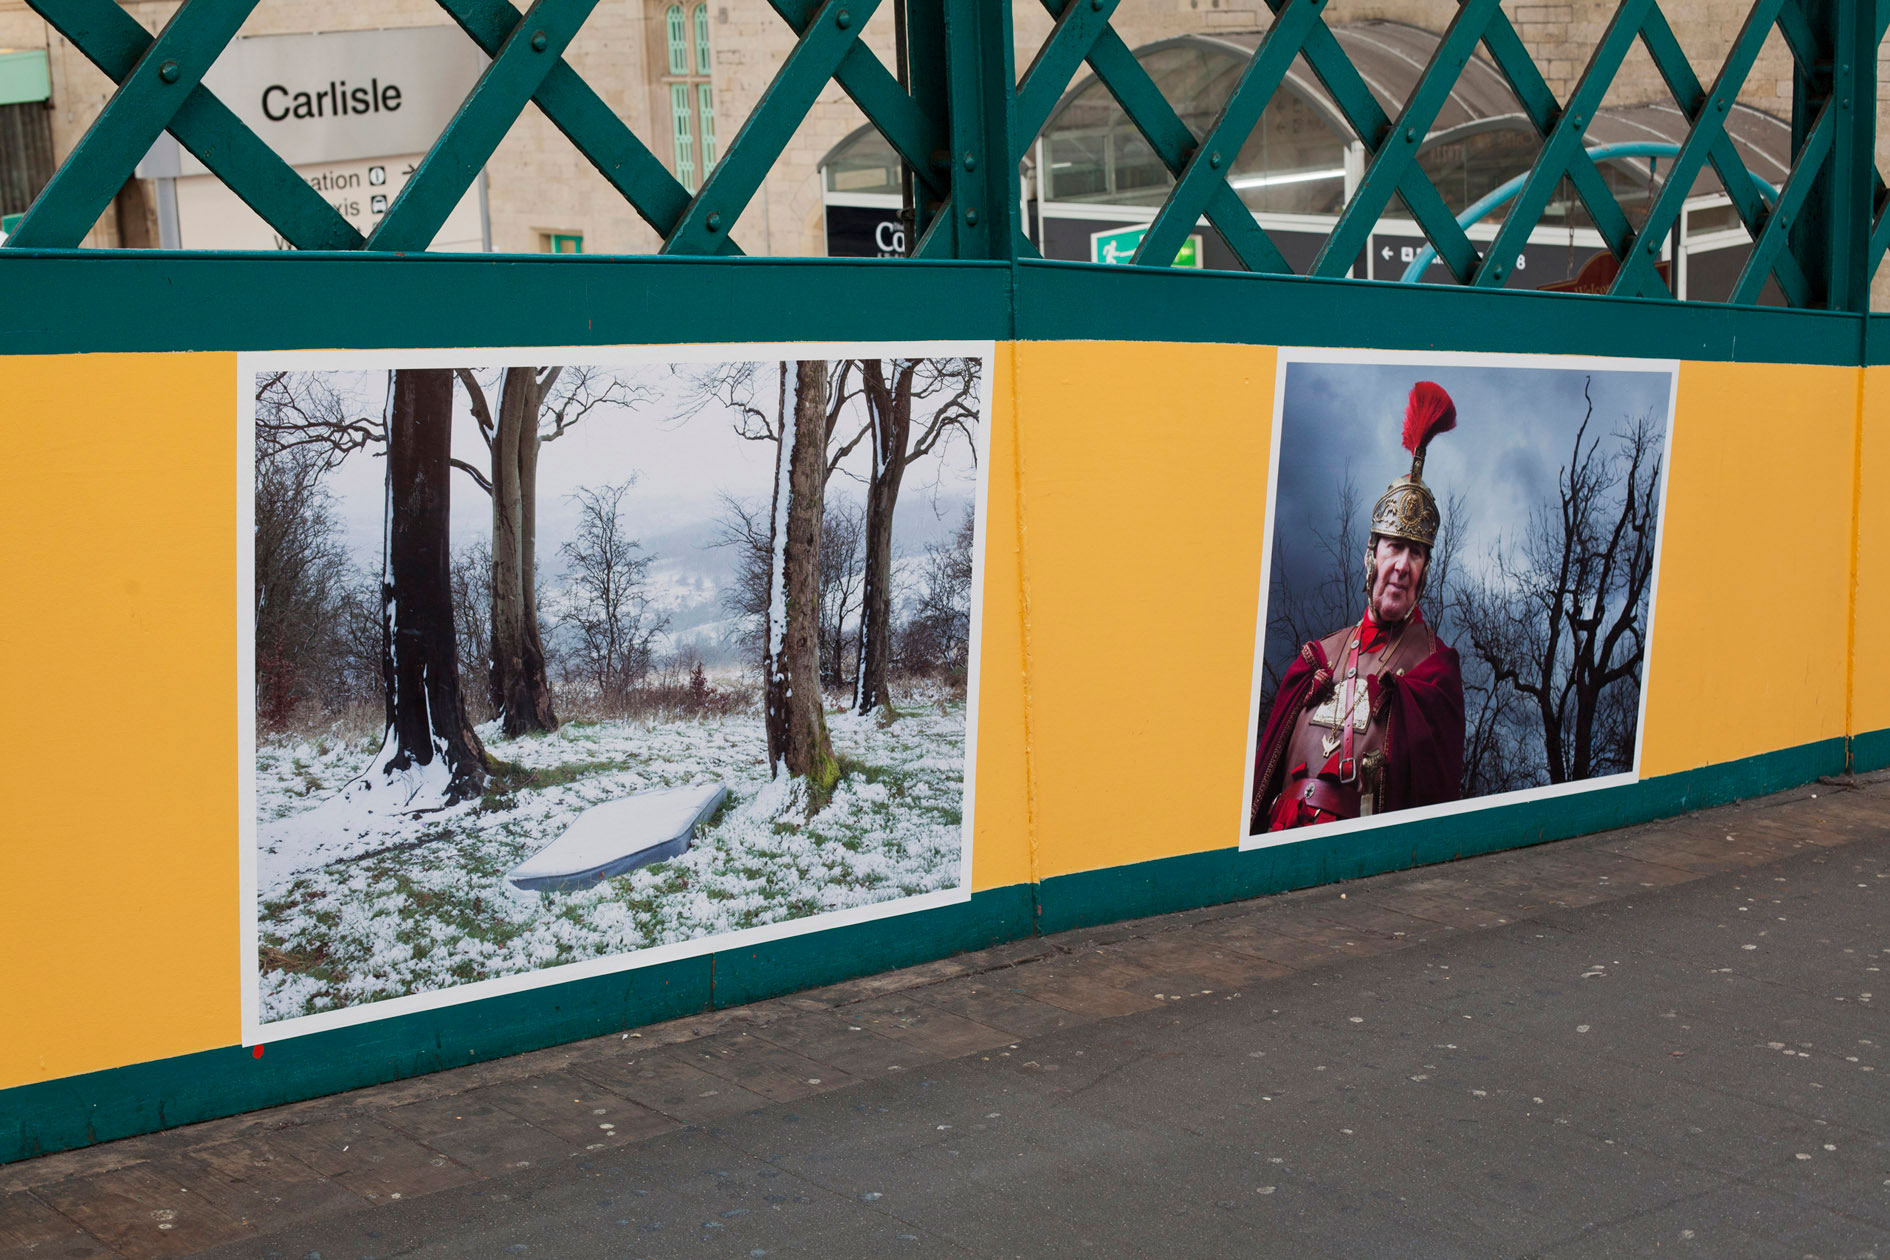 Jeremy Sutton-Hibbert's images from 'Edge of an Empire' installed at Carlisle Photo Festival © Streetlevel Photoworks November 2014